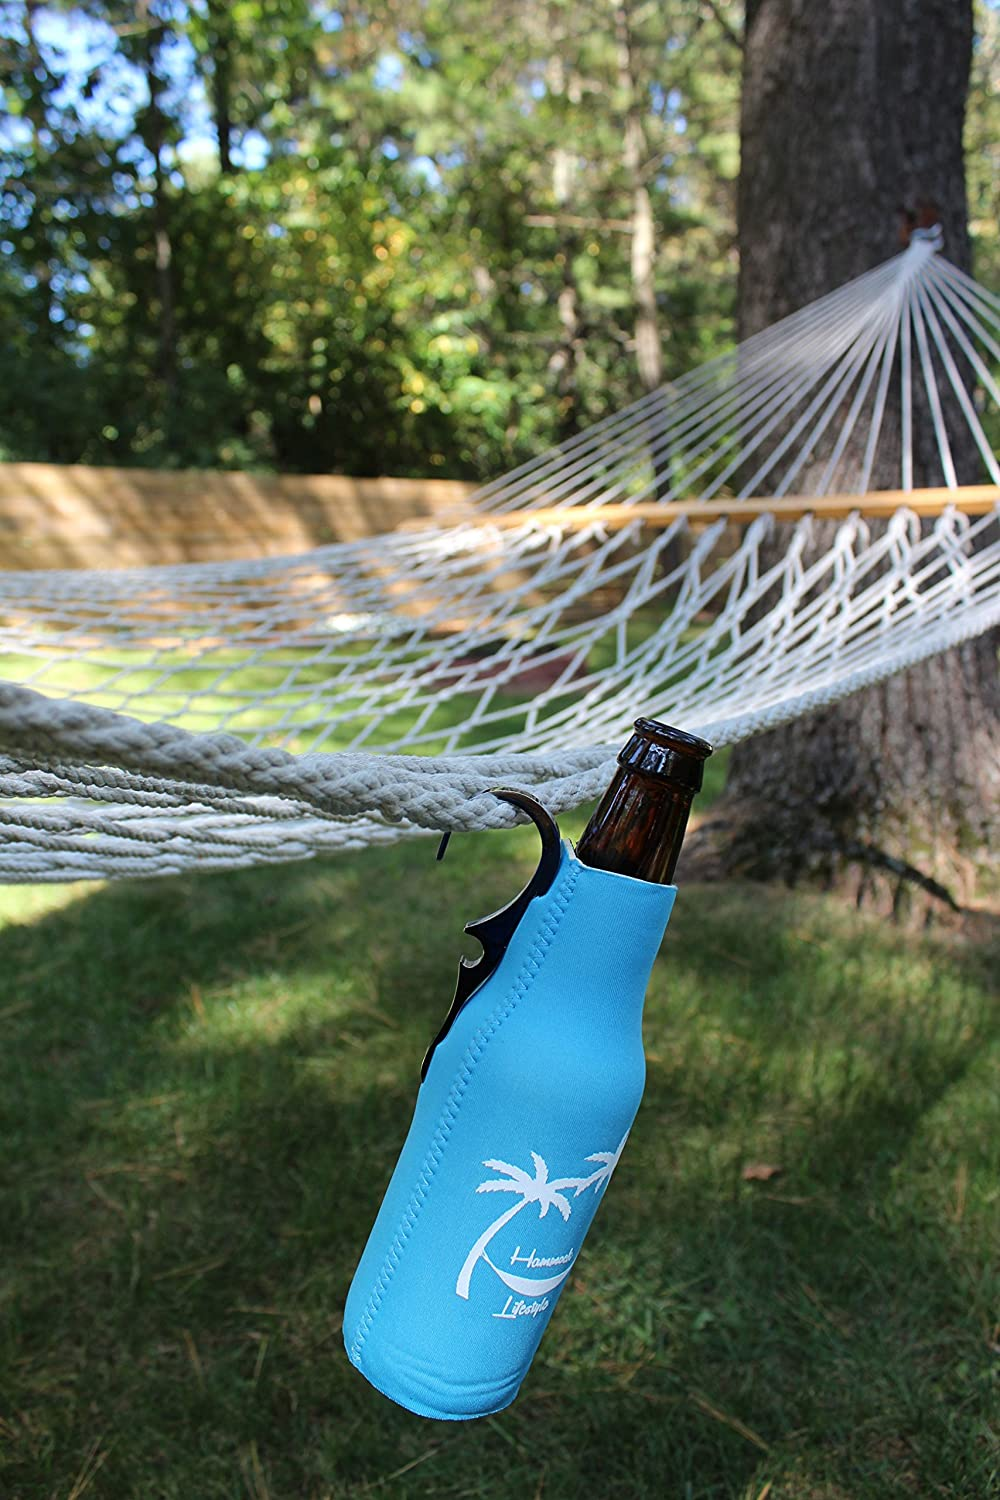 CoozieClaw Unique Bottle Cooler with Built in Hook and Bottle Opener Fun Gift #1 Hanging Bottle Holder Easily Hang Your Cold Beer Bottle Sleeve Anywhere Hammock Lifestyle USA 1, Bachelorette